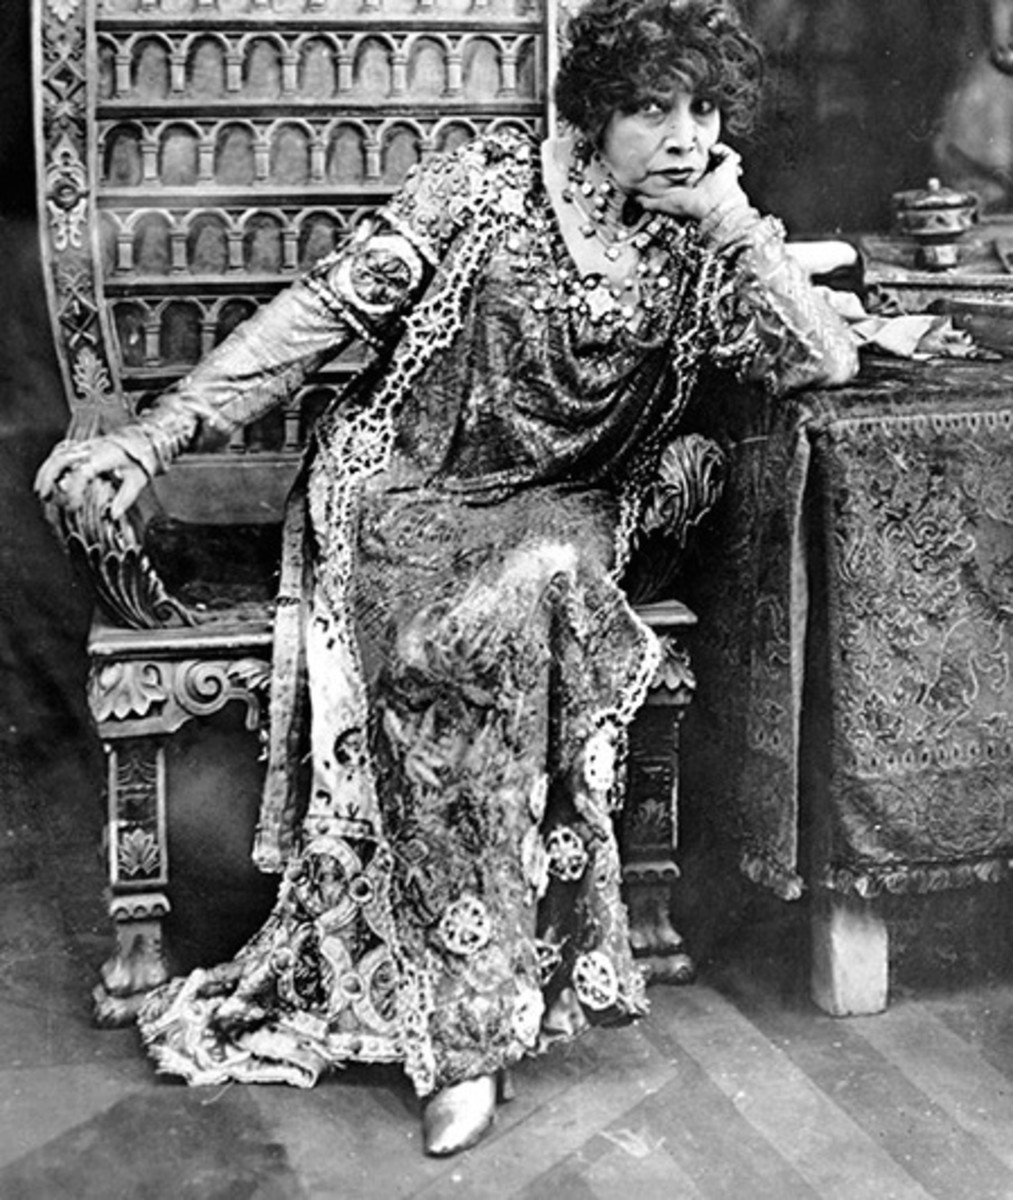 Sarah Bernhardt performed into her old age, even without one of her legs.